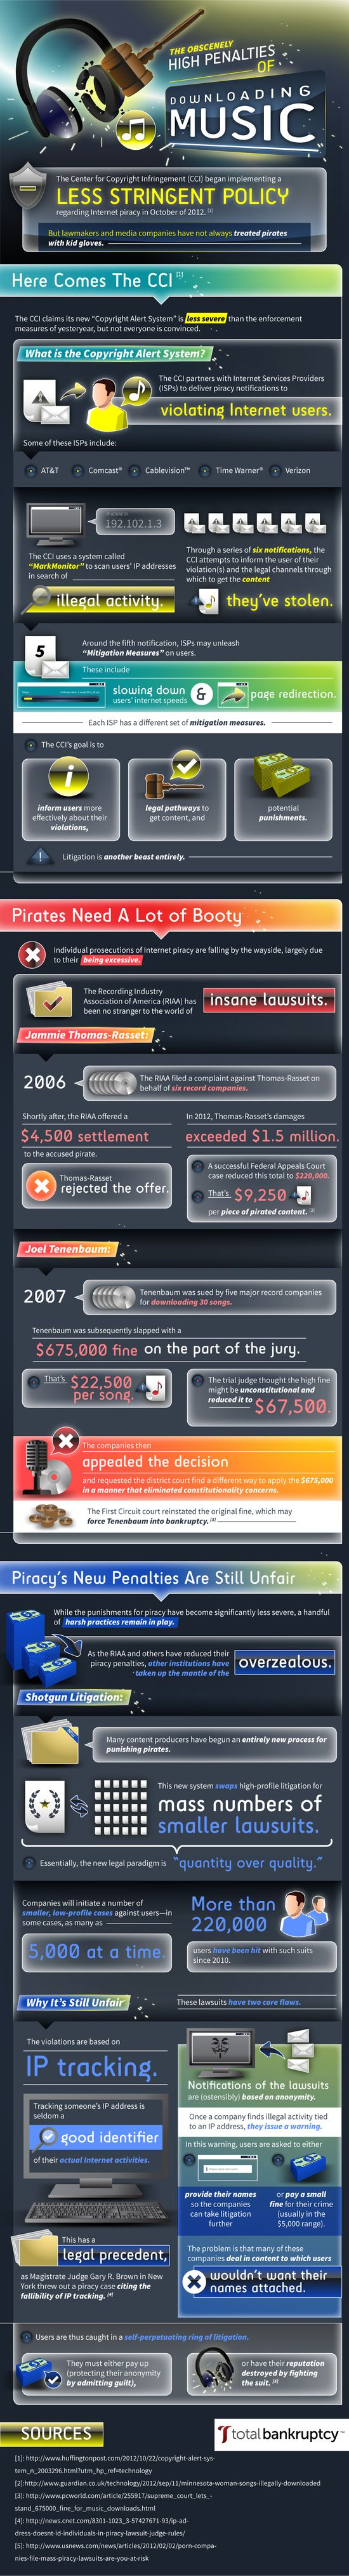 The Risks of Music Piracy in 2013 #infographic #music #piracy